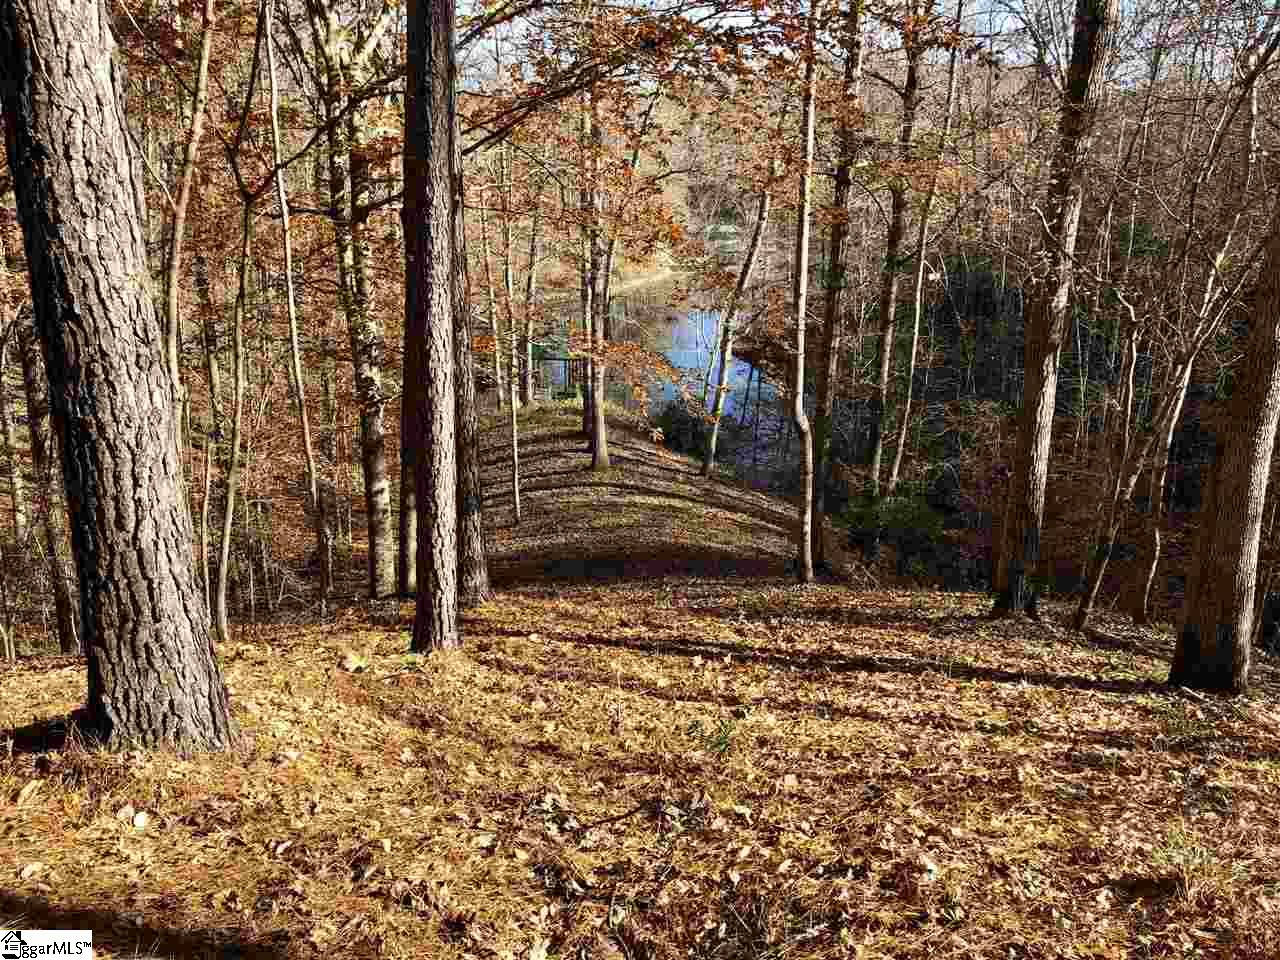 Check out this 2.5 acre waterfront lot in the prestigious and gorgeous Cliffs at Keowee Springs! Get this lot for less than comparable lots and use that extra money on building your DREAM HOME! Only approx. 16 miles to Clemson University and 33 miles to Downtown Greenville. From the street, this lot gently slopes down to the beautiful Lake Keowee, where you can park your boat on your included covered dock.